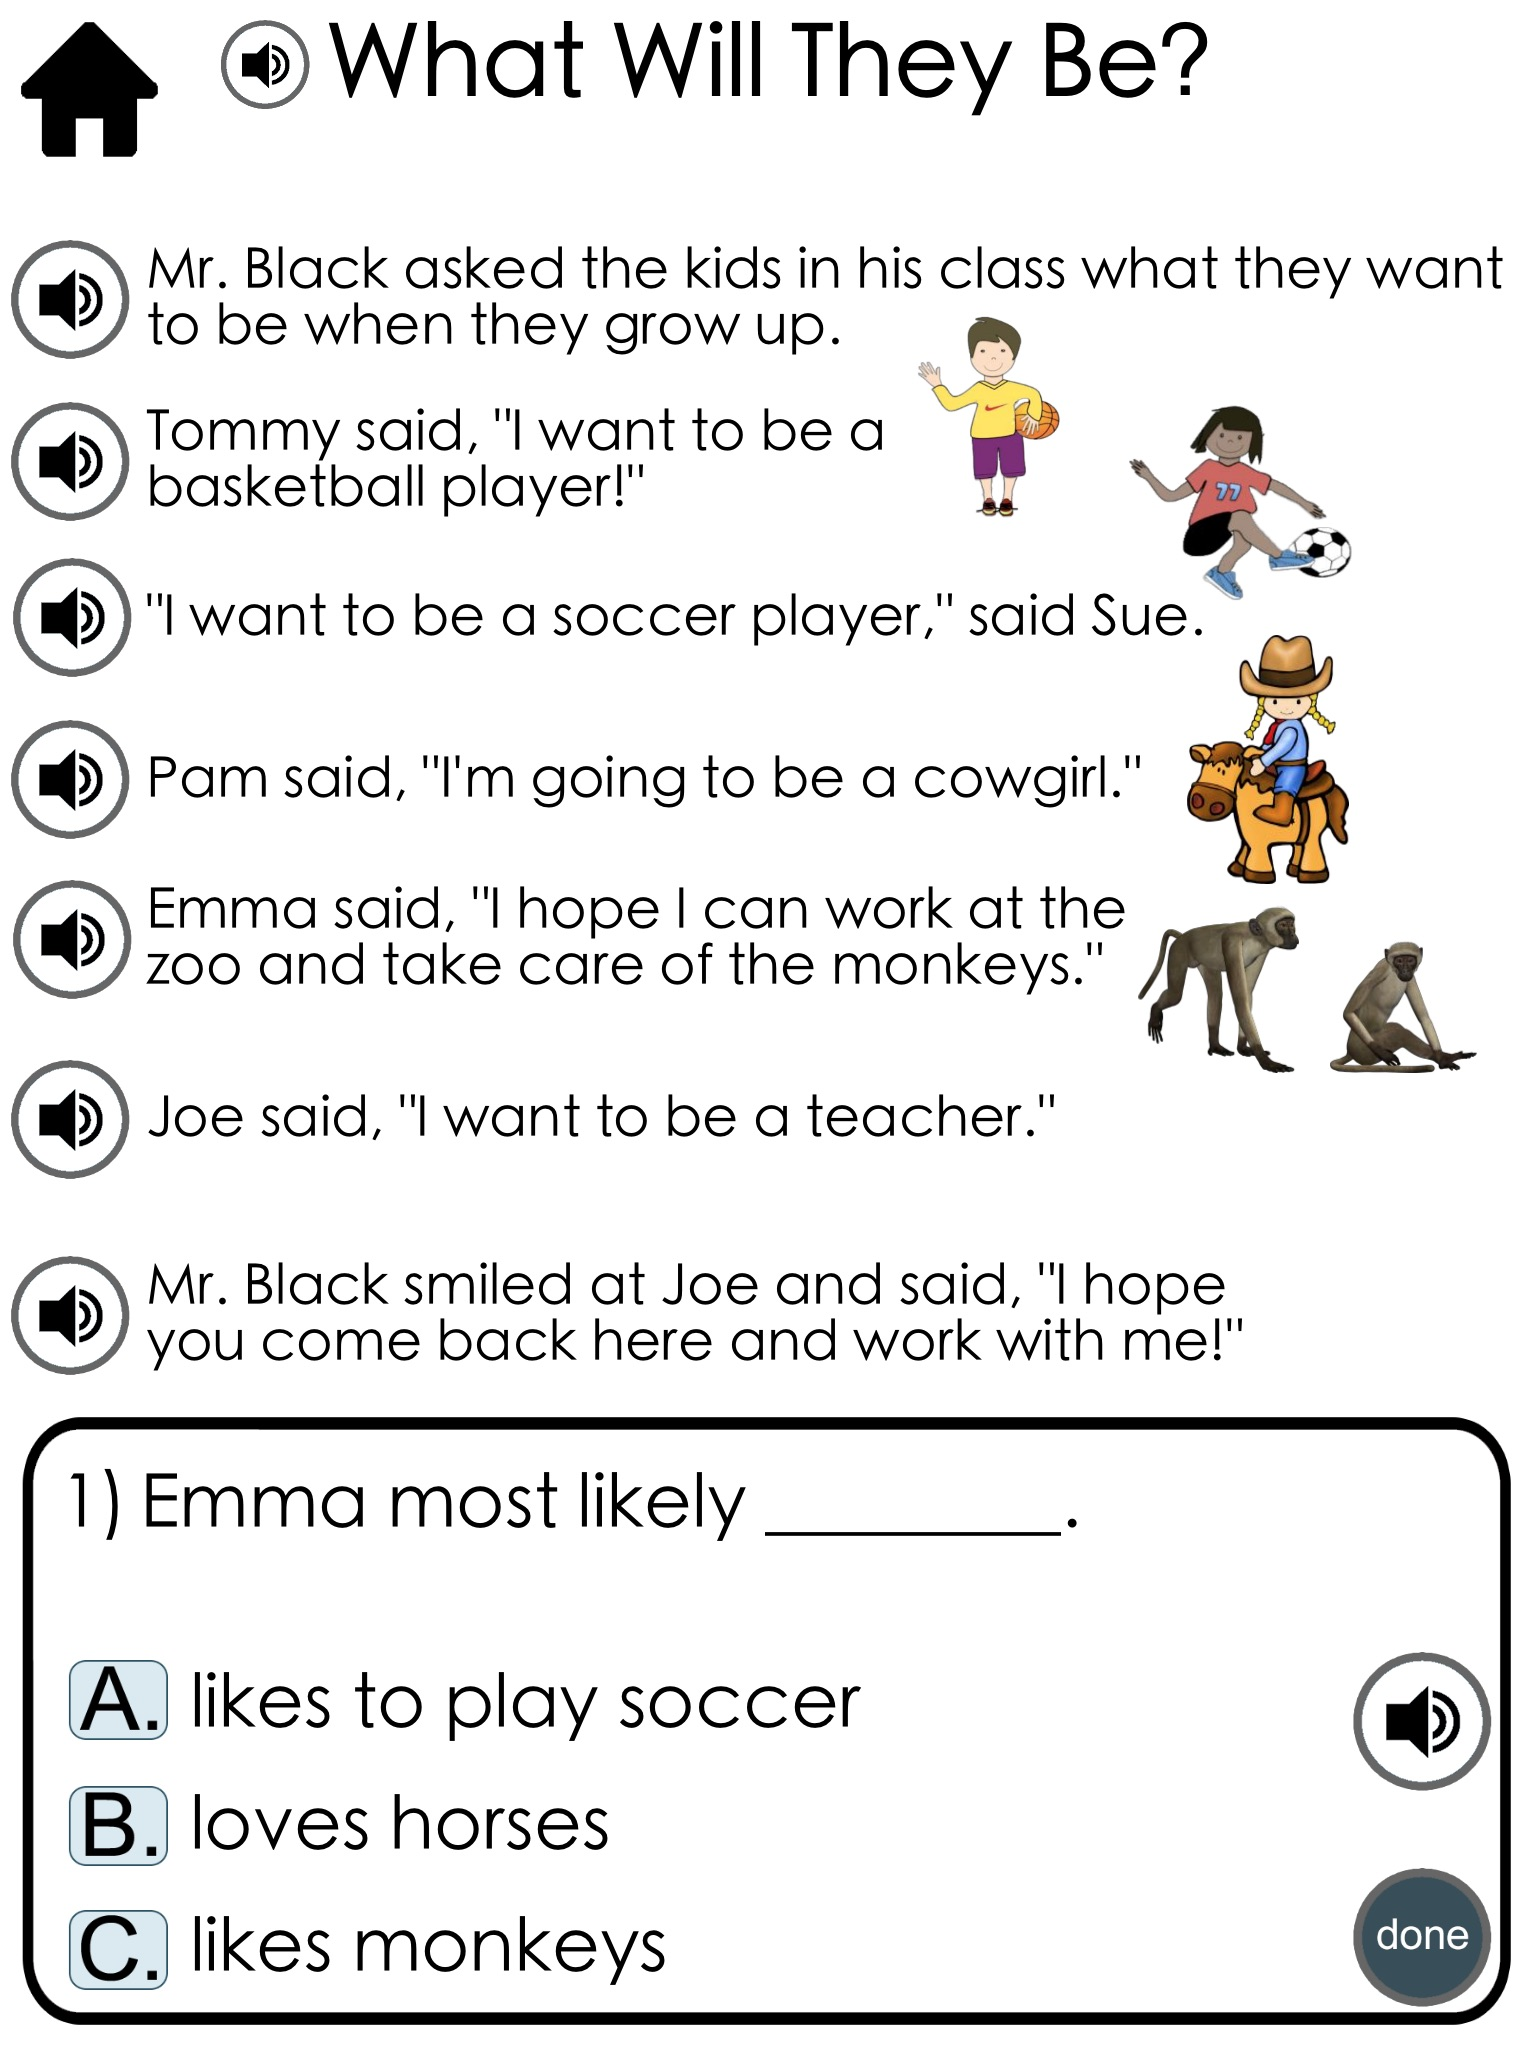 reading comprehension passages Reading comprehension worksheets, workbooks, and guides covering popular books for children and young adults developed by teachers over decades of teaching.